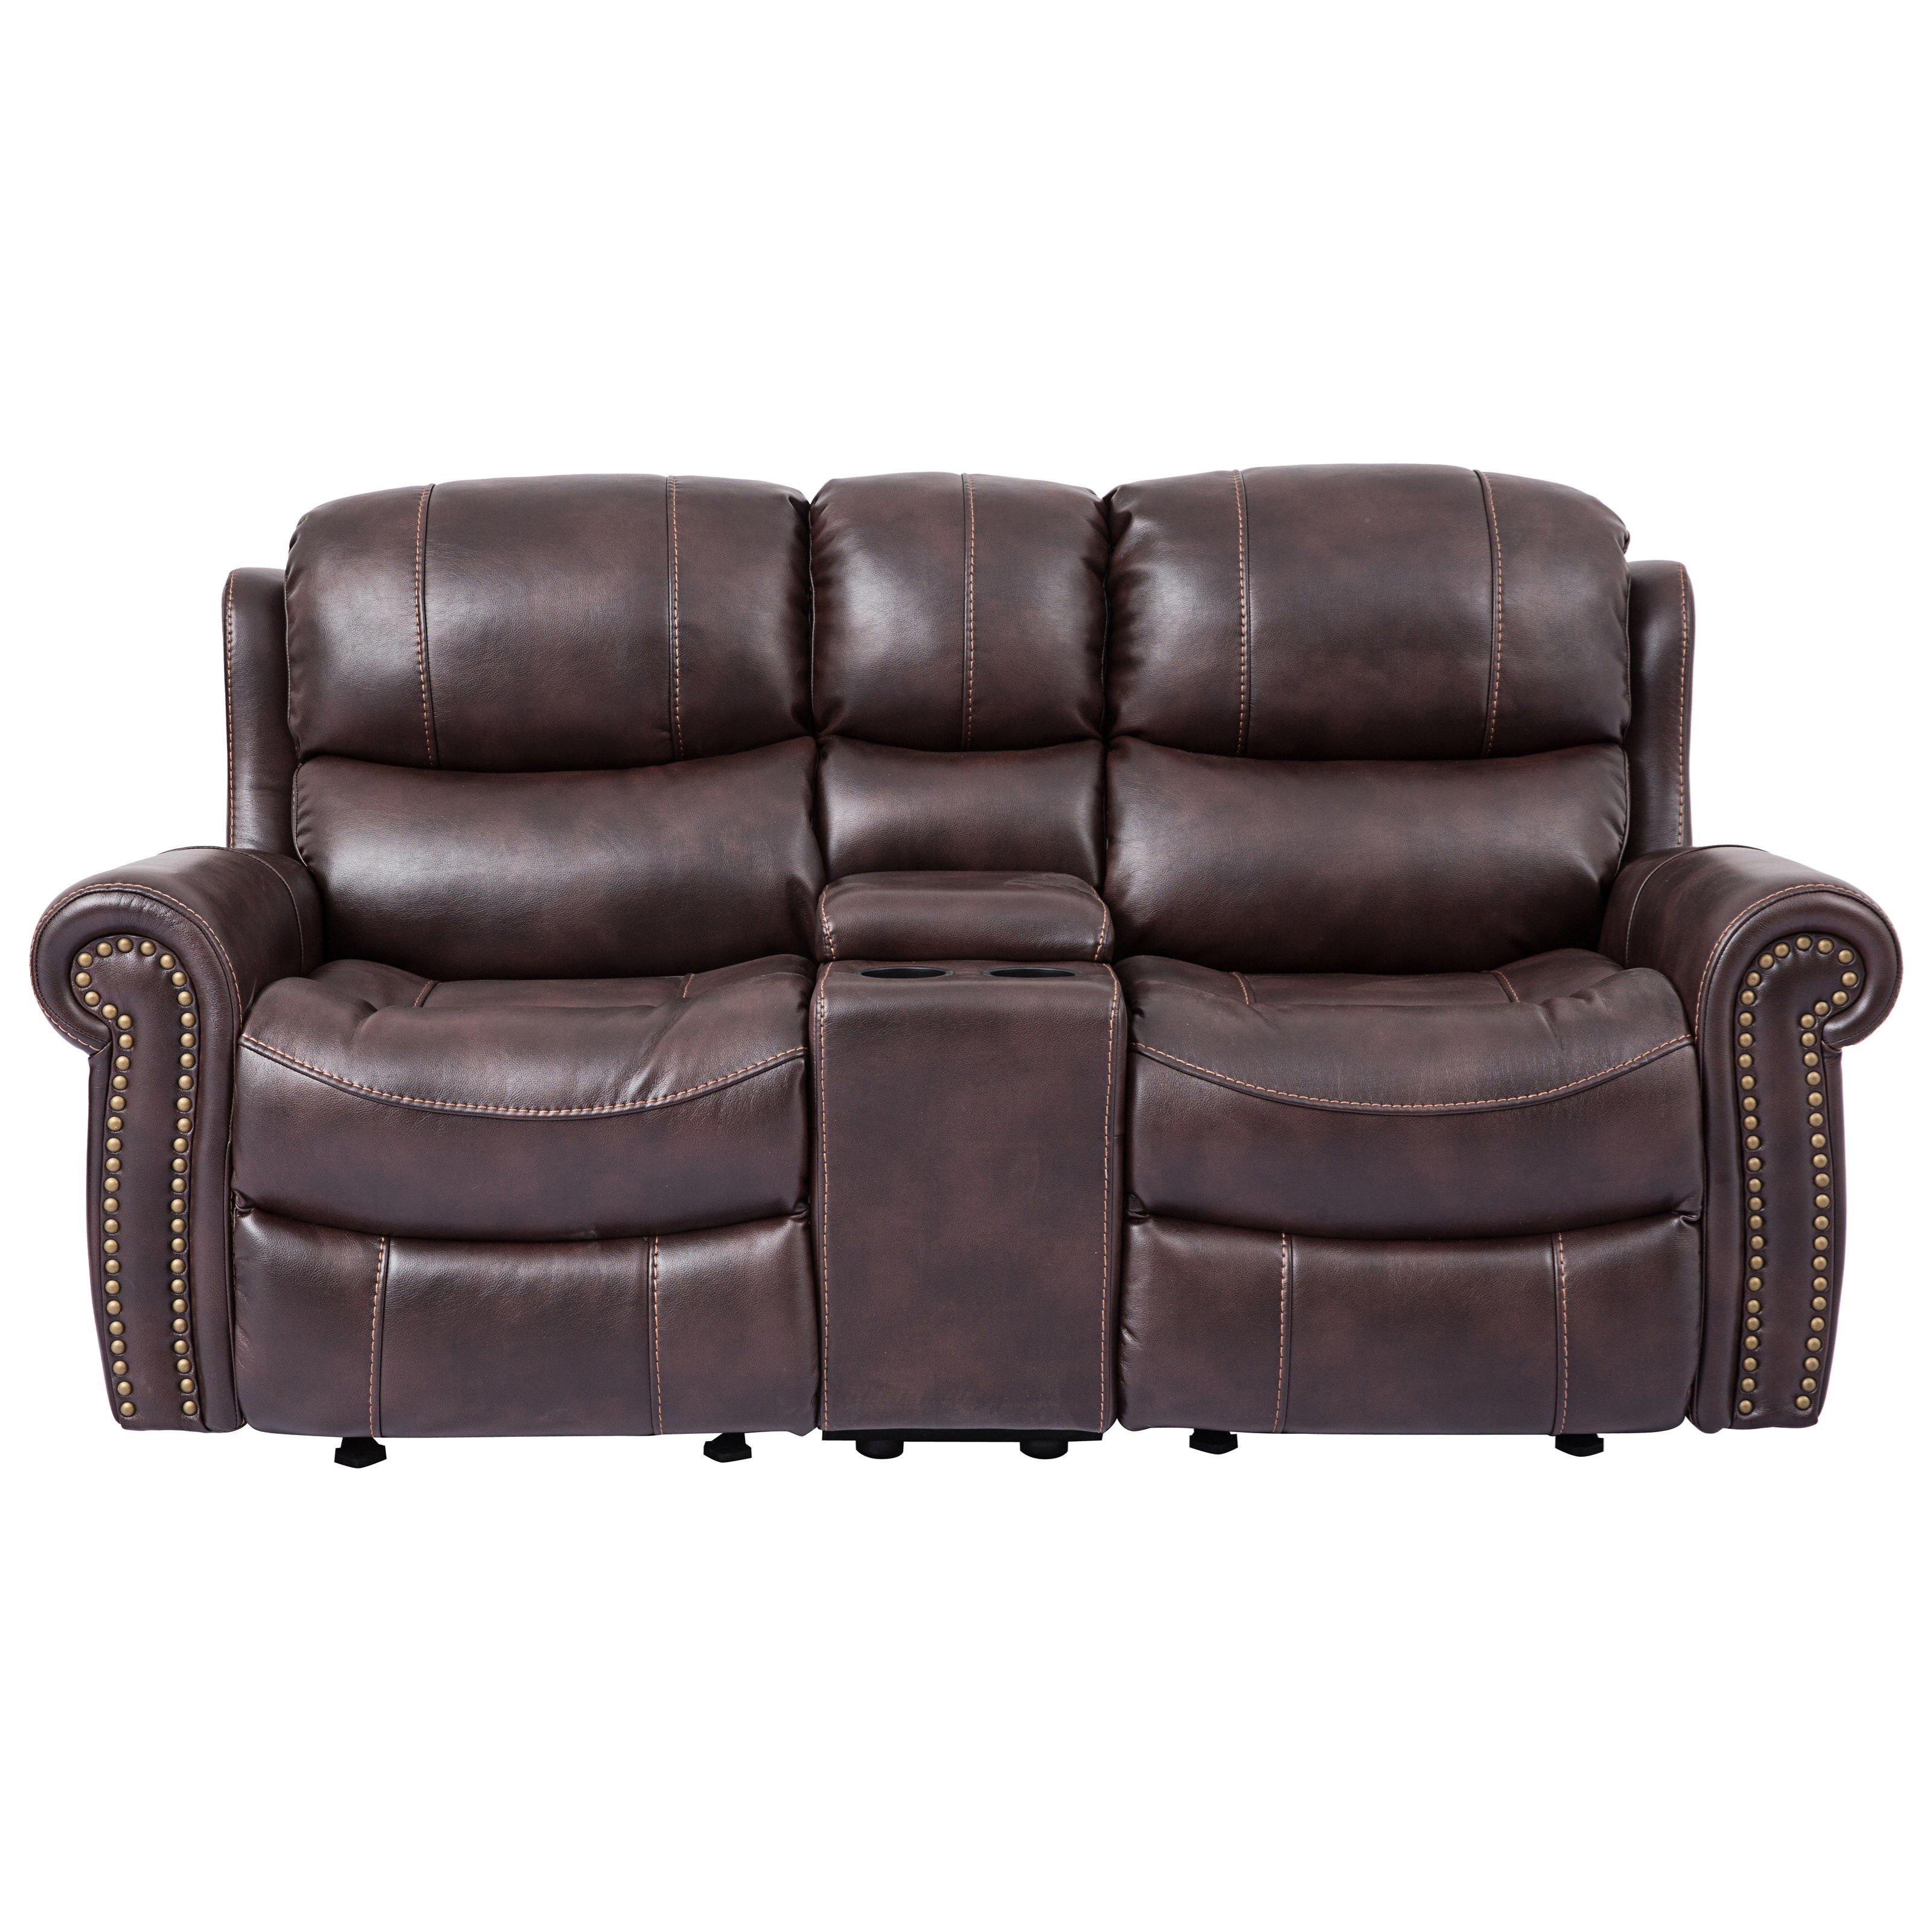 Incredible Piedmont Leather Reclining Loveseat With Console Ibusinesslaw Wood Chair Design Ideas Ibusinesslaworg